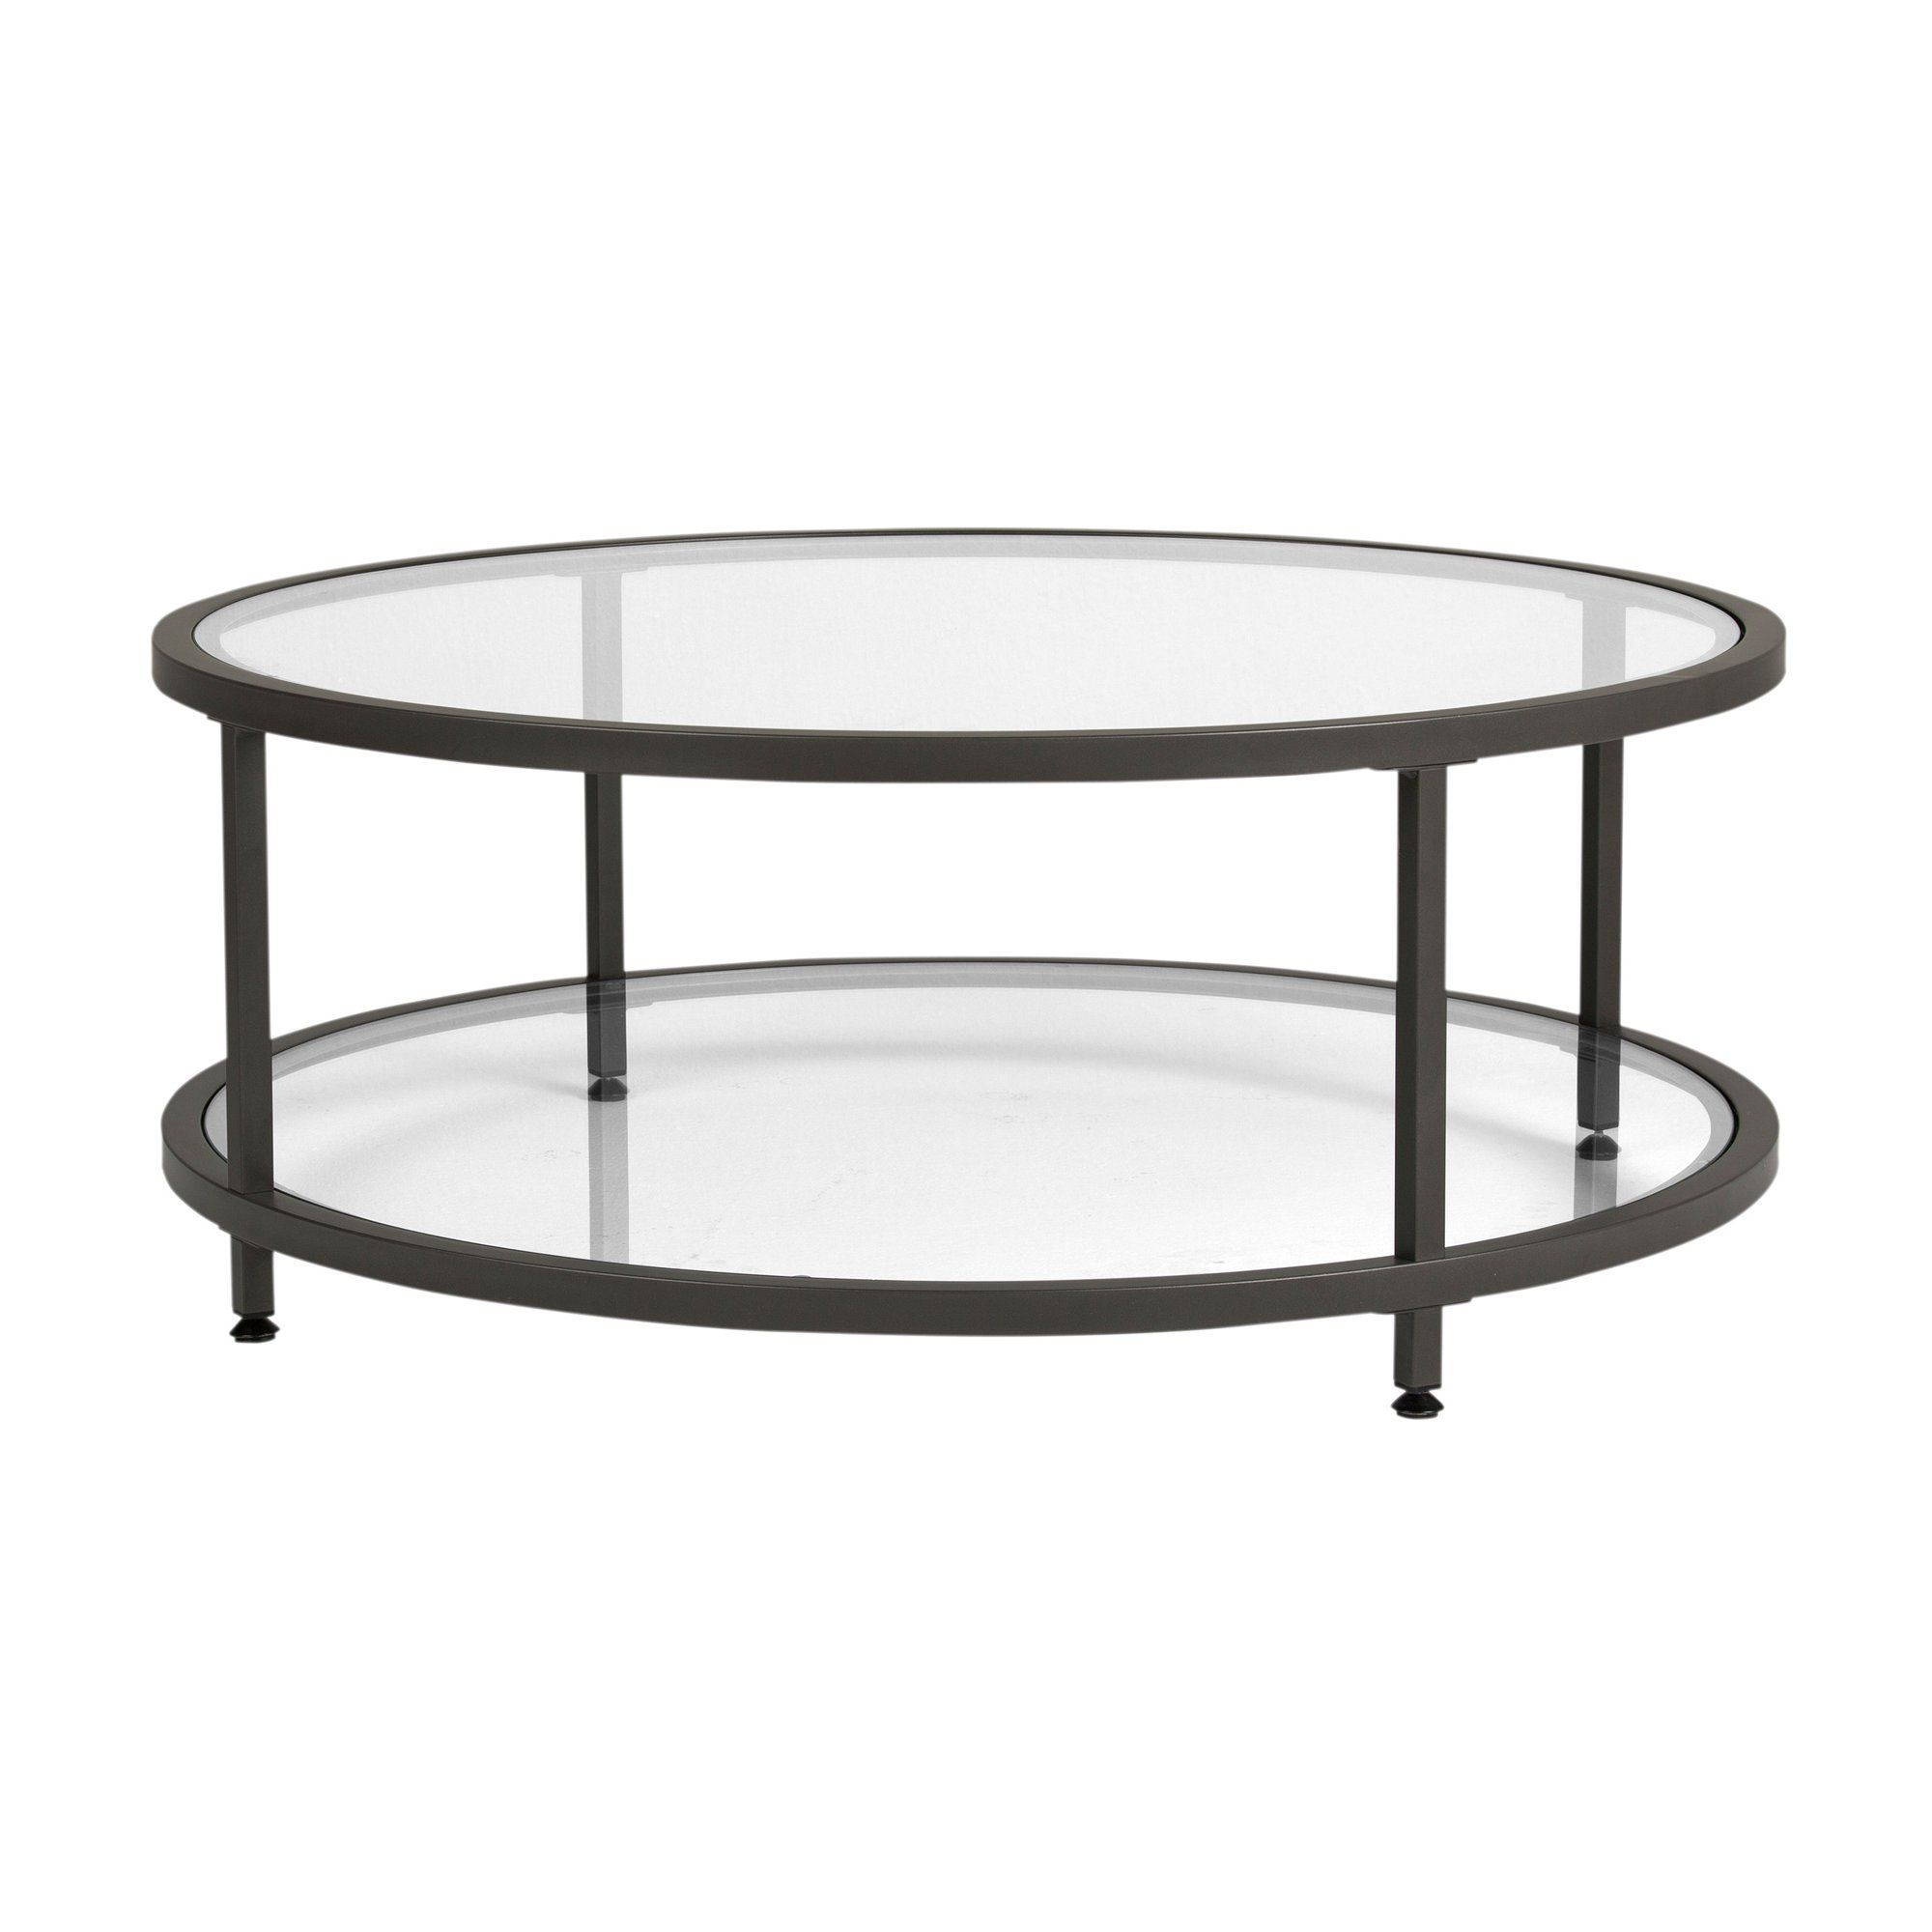 Studio Designs Home Camber 2 Tier Modern 38 Round Coffee Table In Pewter Walmart Com In 2021 Round Glass Coffee Table Coffee Table Coffee Table With Shelf [ 2000 x 2000 Pixel ]